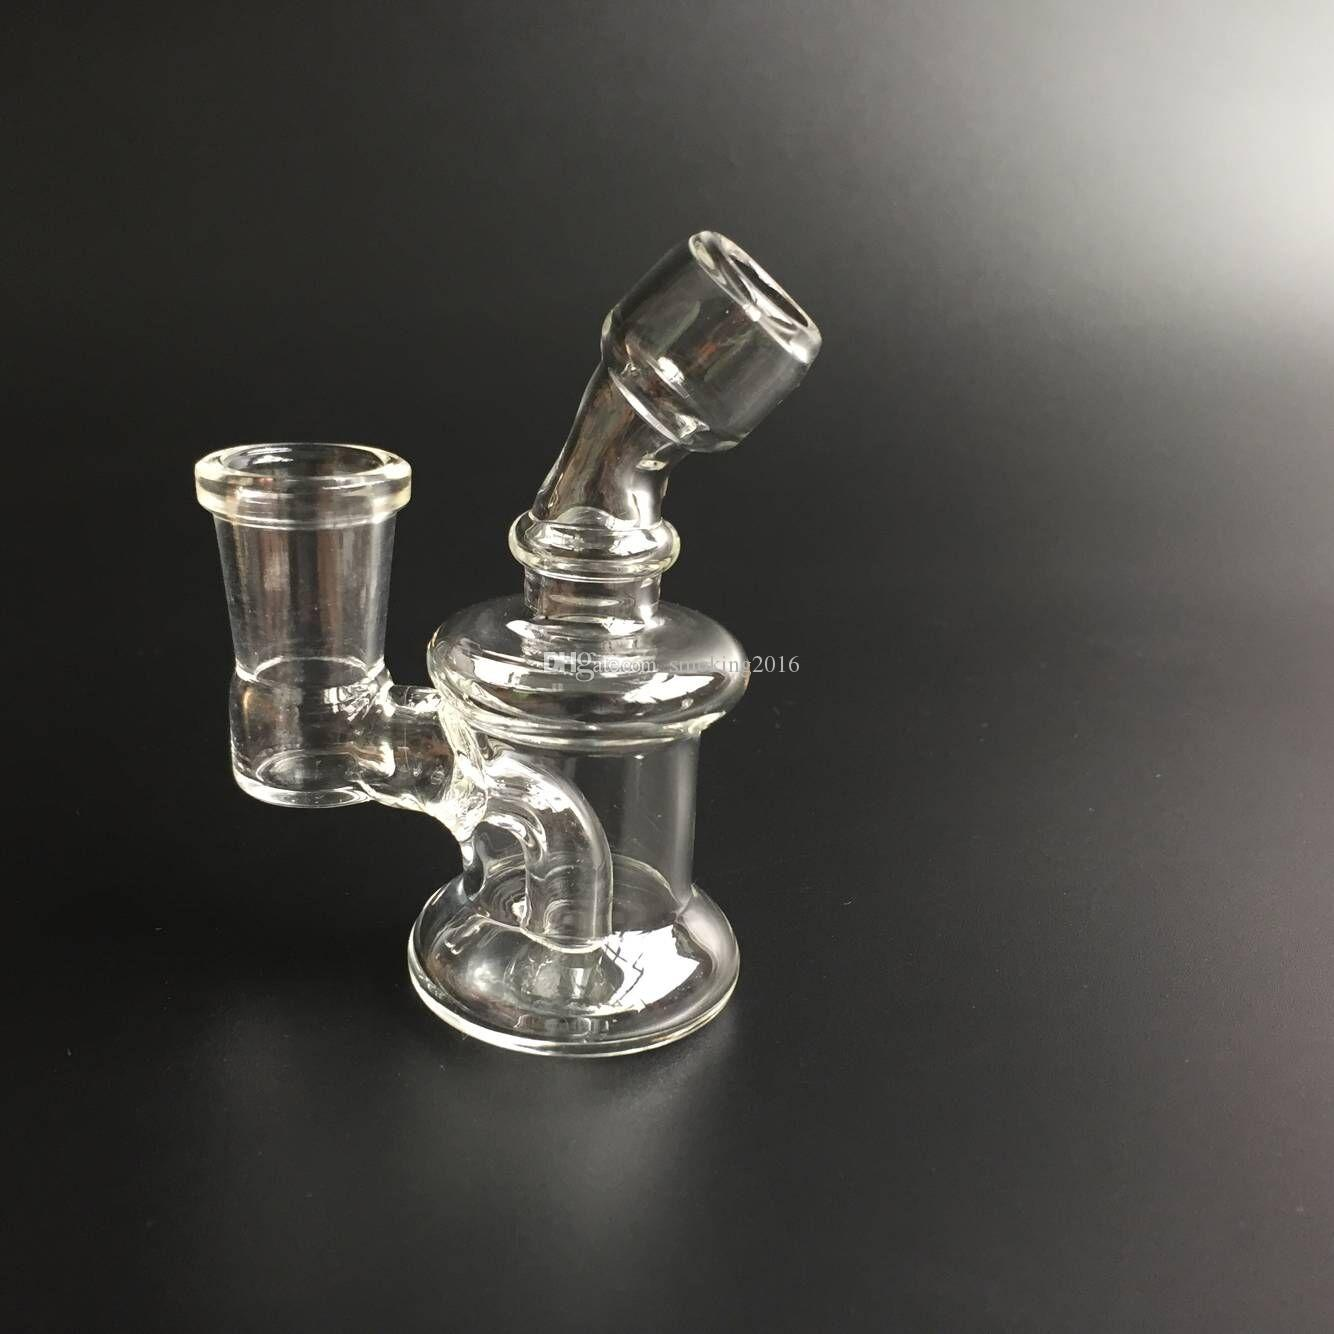 Nano Rig 3.4Inch 14.4mm joint Bongs De Verre Rig Fab Oeuf Bongs Rig Rig Dabs Verre Rouge Huile Gouttes Heady Recycler livraison gratuite